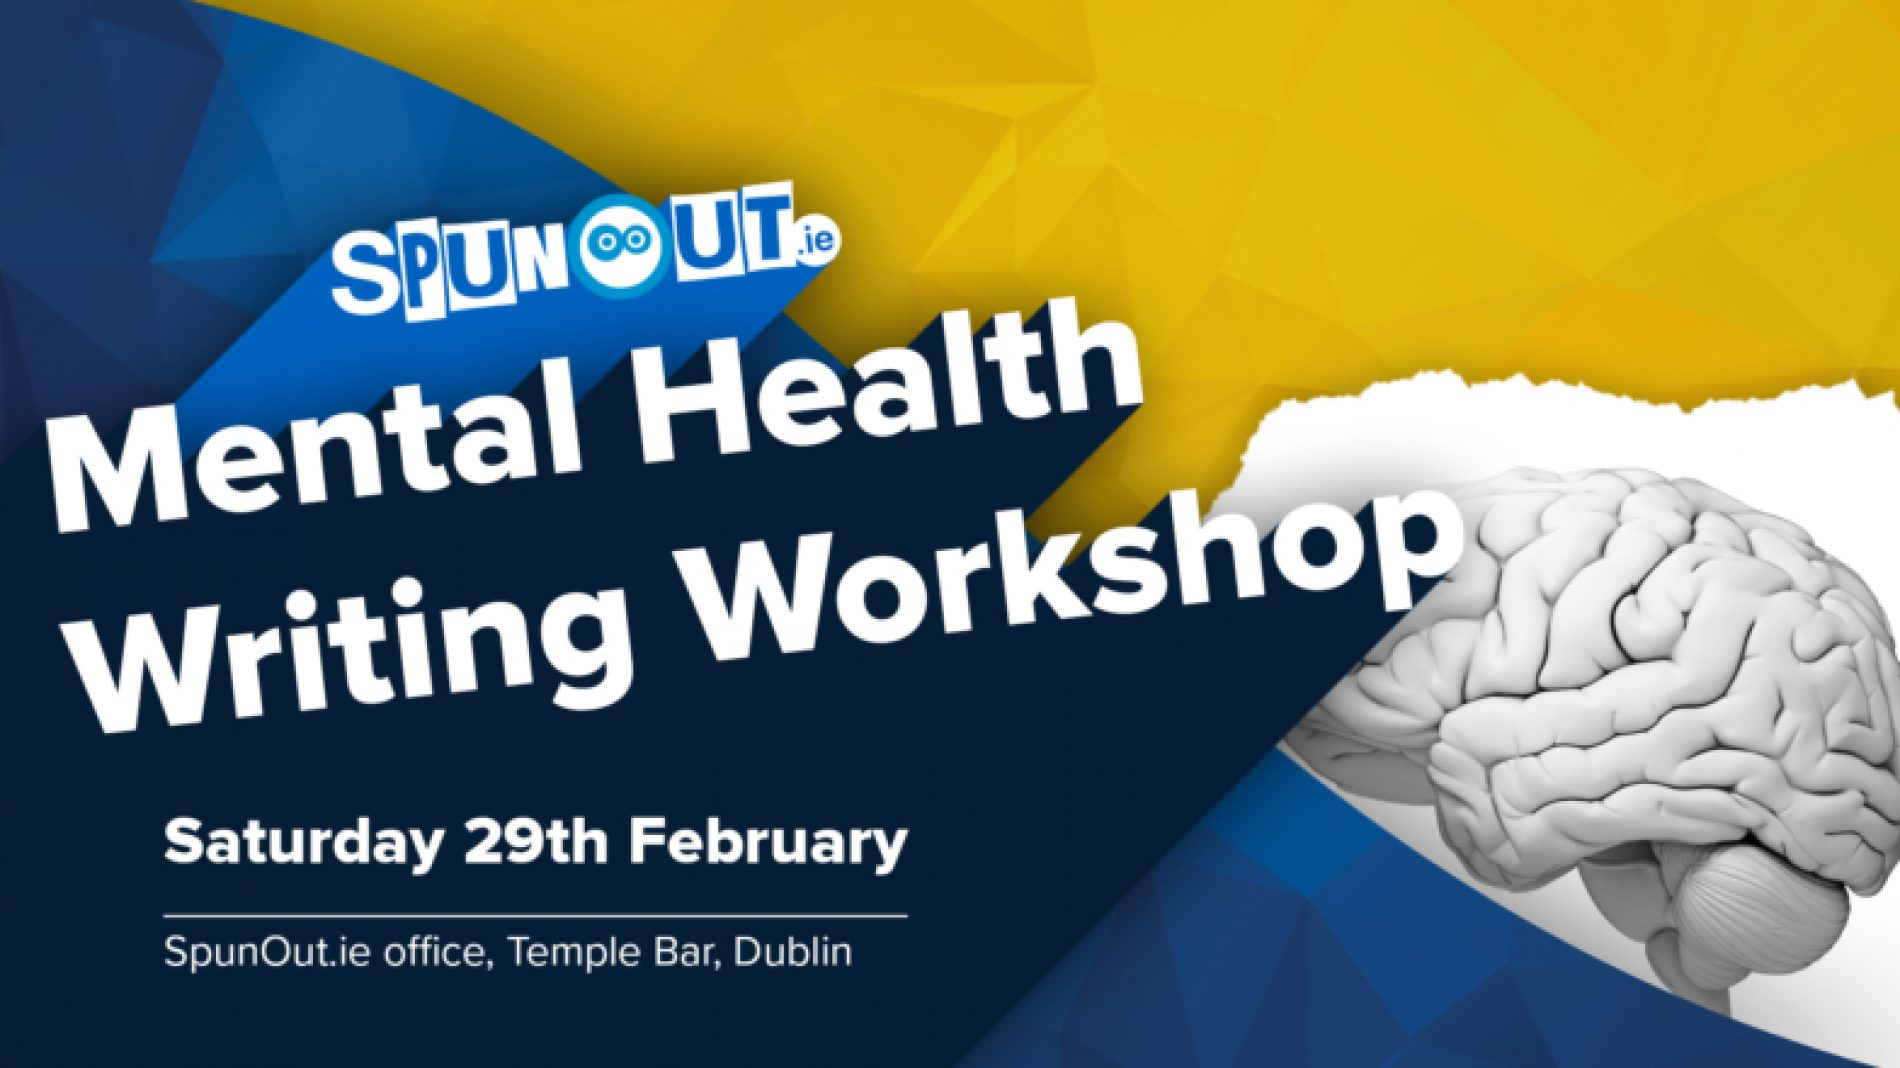 Mental-Health-Writing-Workshop-Article-Cover-1bZzol